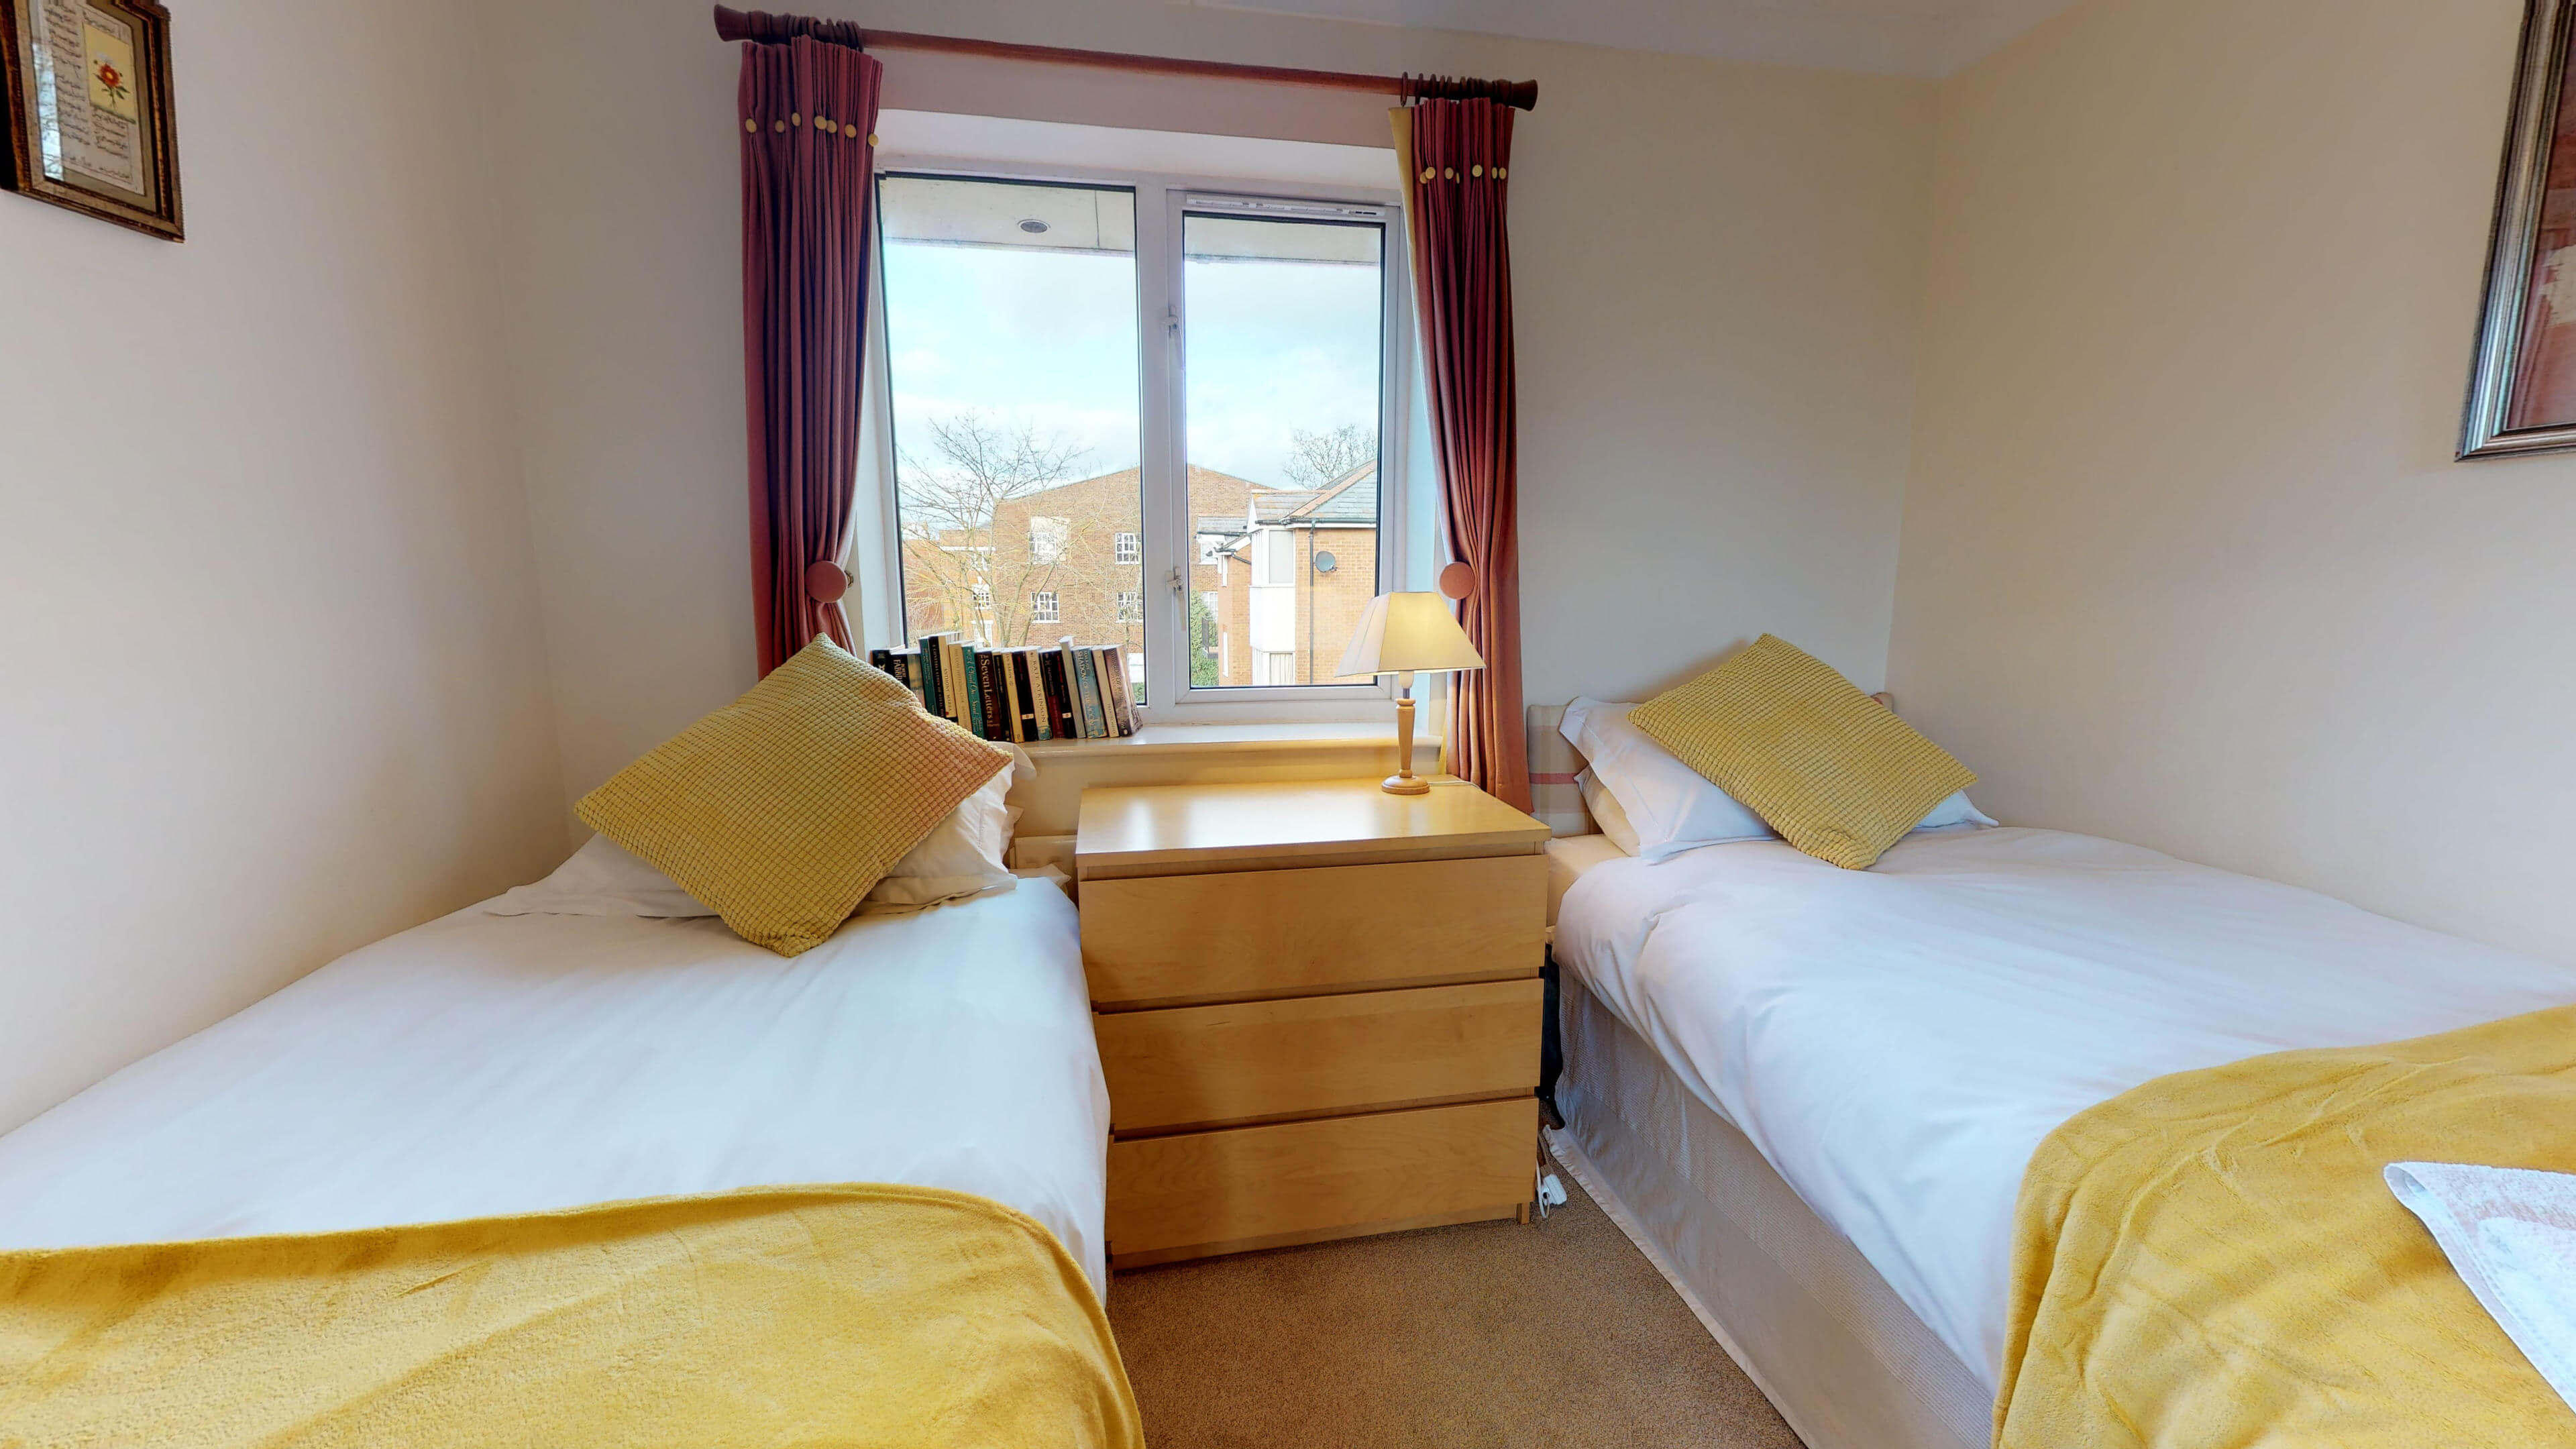 Millbank Oxford City Centre Short Stay Apartment Sleeps 4 Bedroom Twin